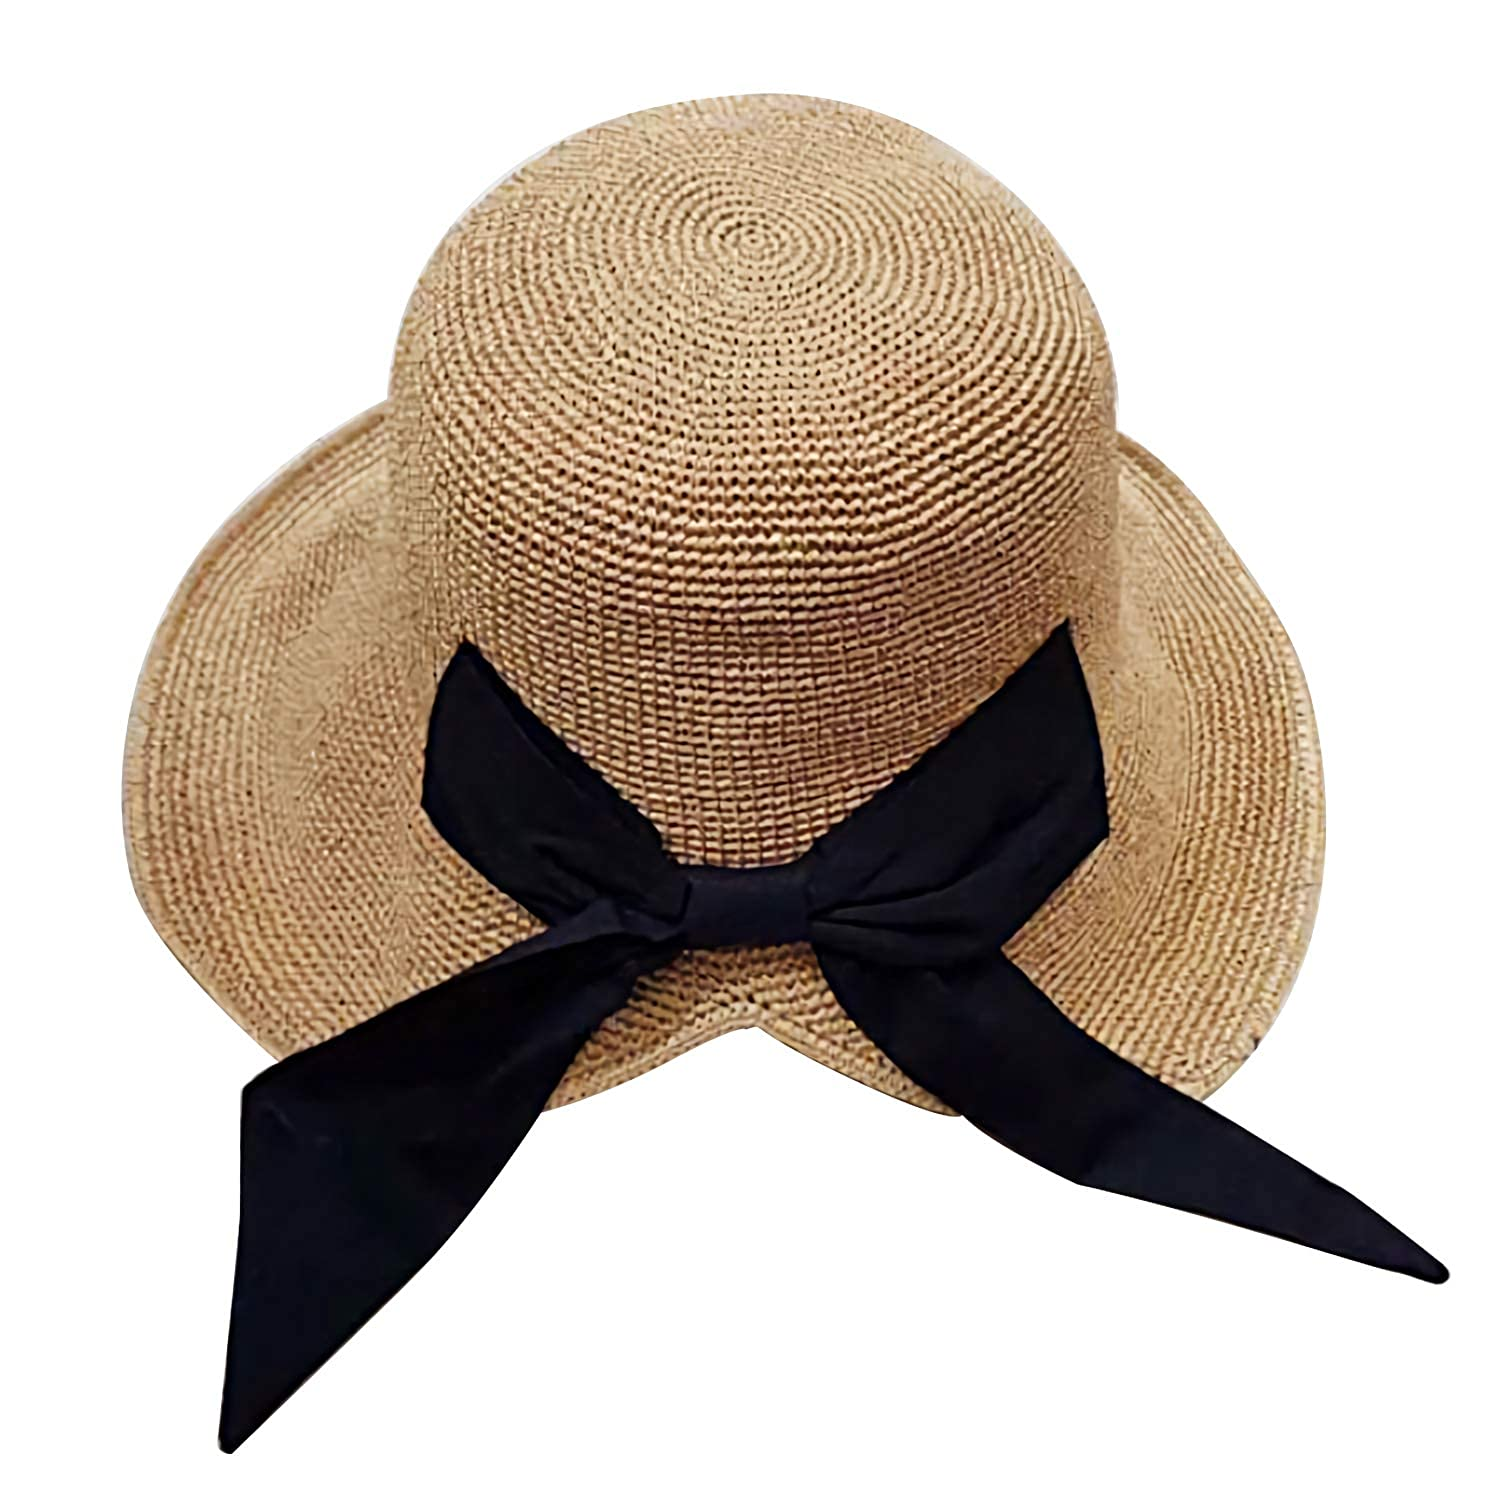 d66a5f10 Women Sun Hat Bowknot Straw Hat Wide Brim Foldable Roll Up Hat for Travel  Beach Summer Khaki at Amazon Women's Clothing store: